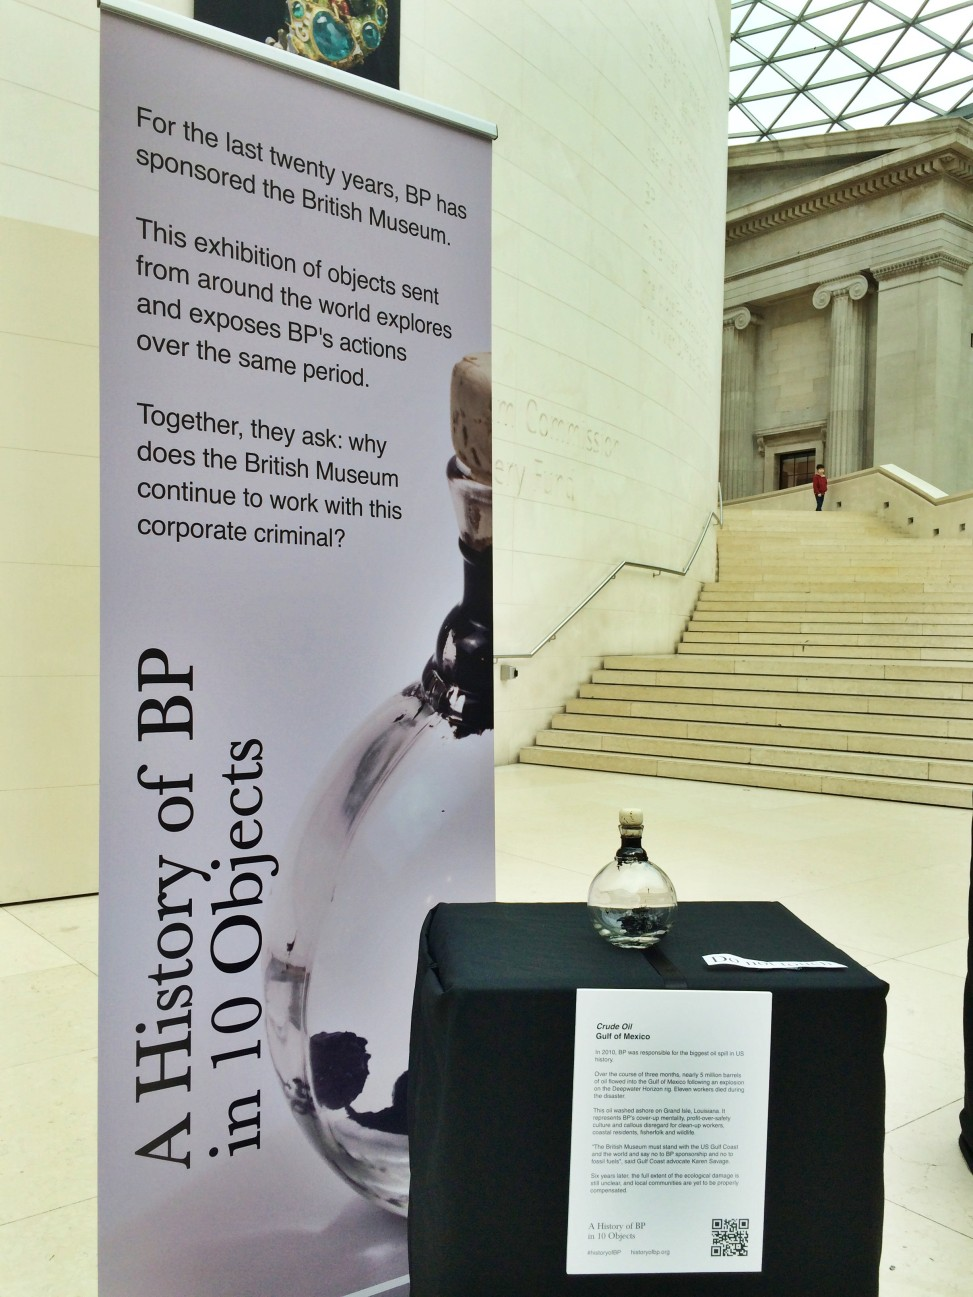 """Crude Oil"", on display without permission in the British Museum. Photo by Amy Scaife"